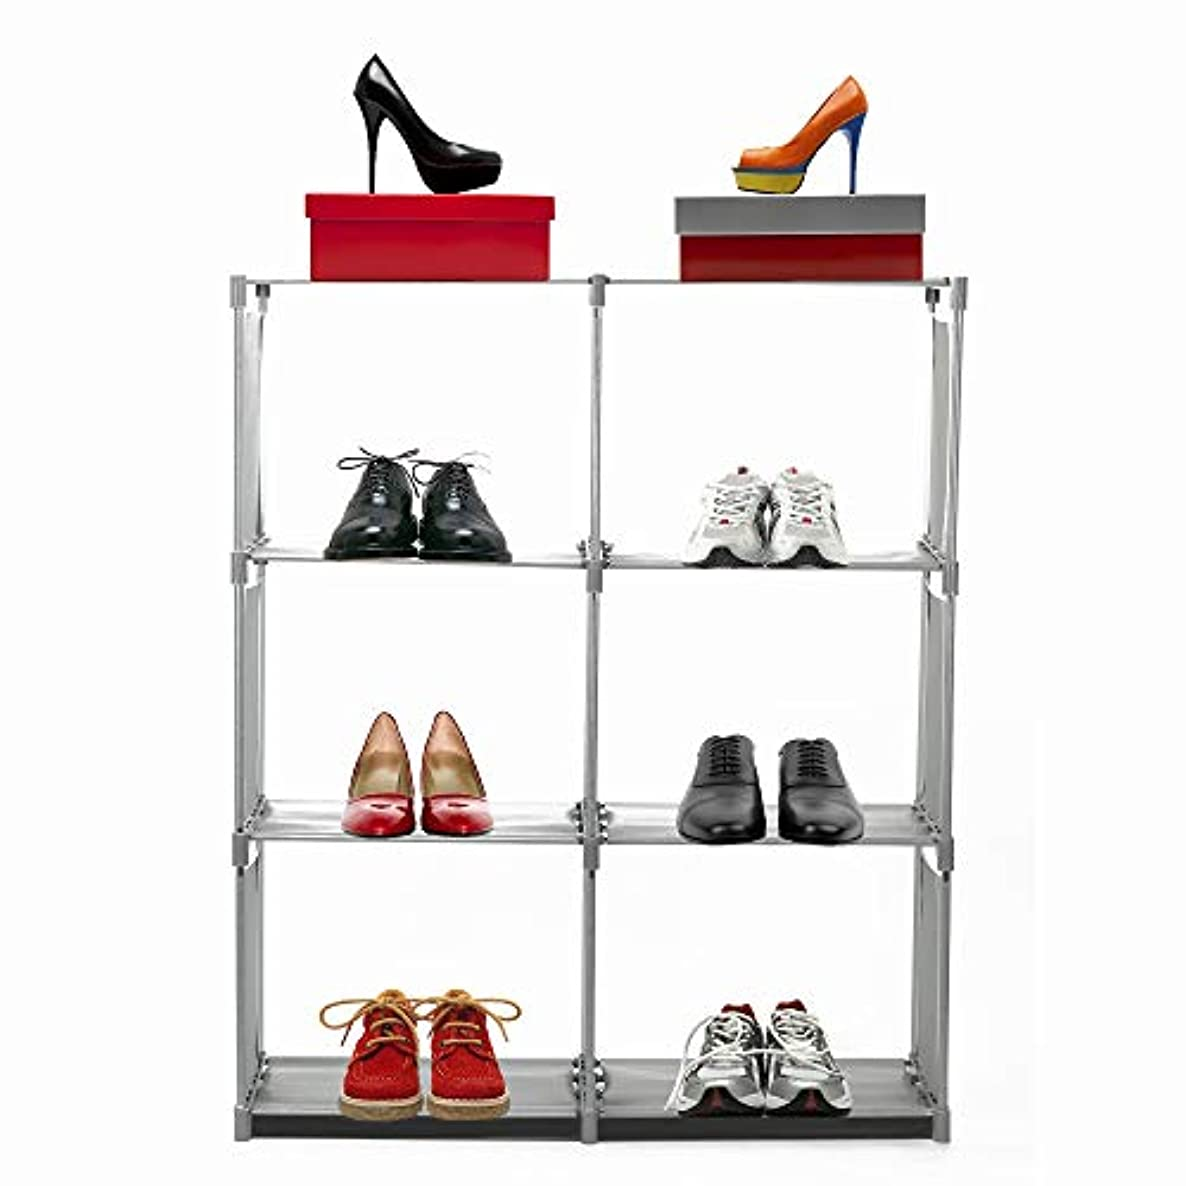 SONGNO 4-Tier Shelving Unit, 6-Cube Modular Space Saving Shoe Tower Closet Cabinet Storage Organizer Units for Entryway Bedroom Living Room and Corridor Grey